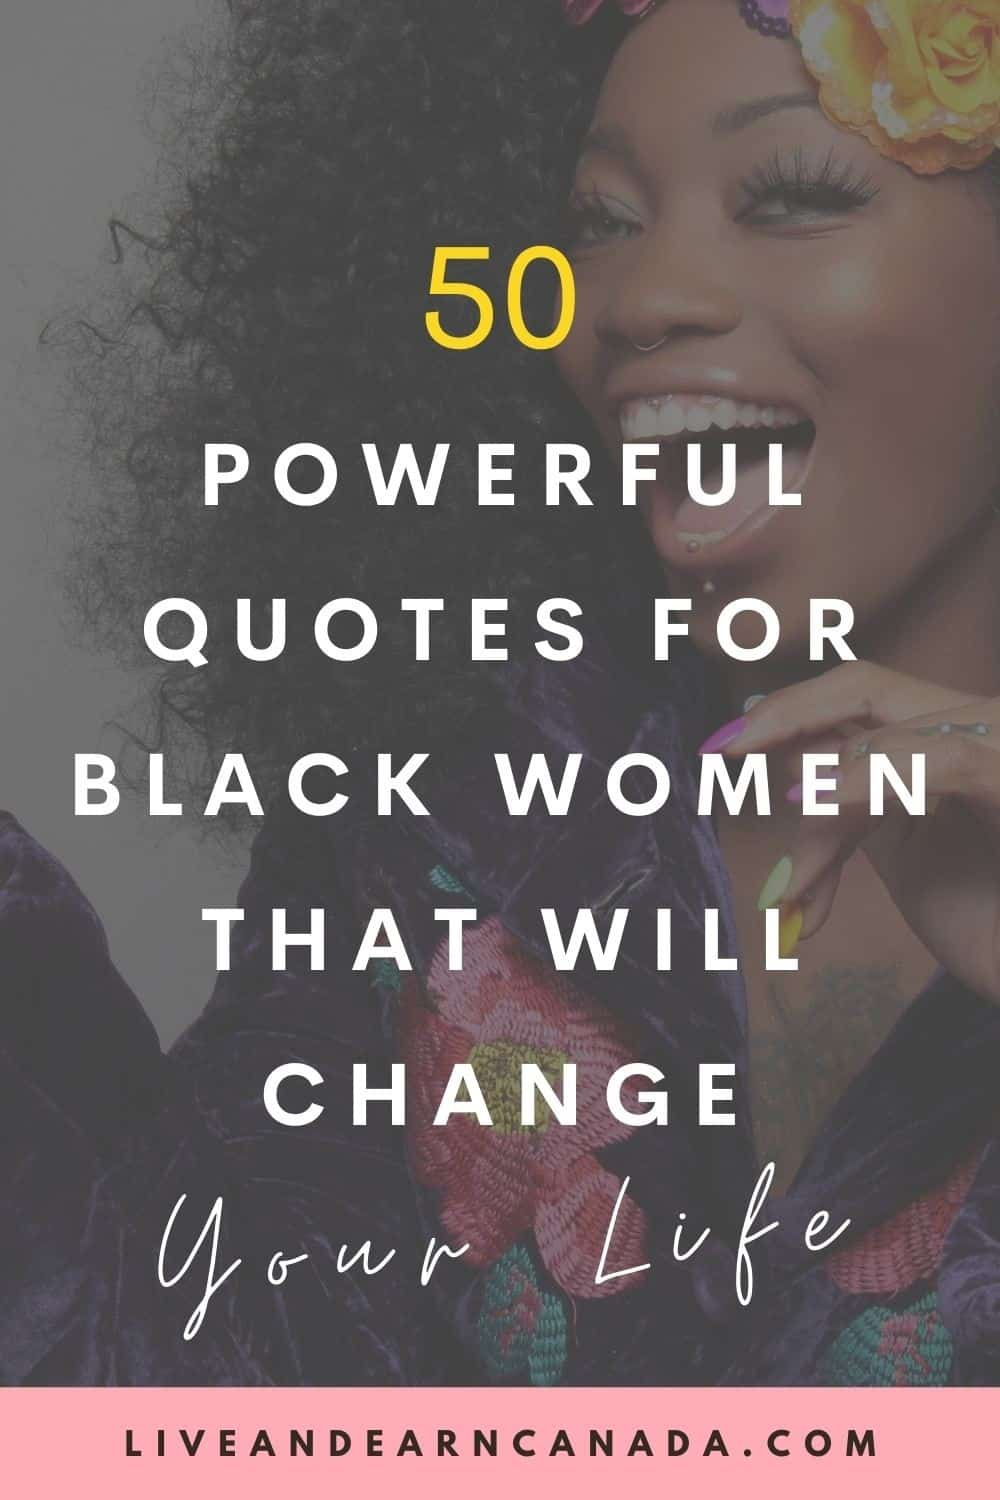 Powerful quotes for women of colour! 50 Inspirational Strong Women Quotes! Here is a list of the best quotes to motivate black women! 50 Quotes About Hope and Strength From Famous Black Women and regular black women!